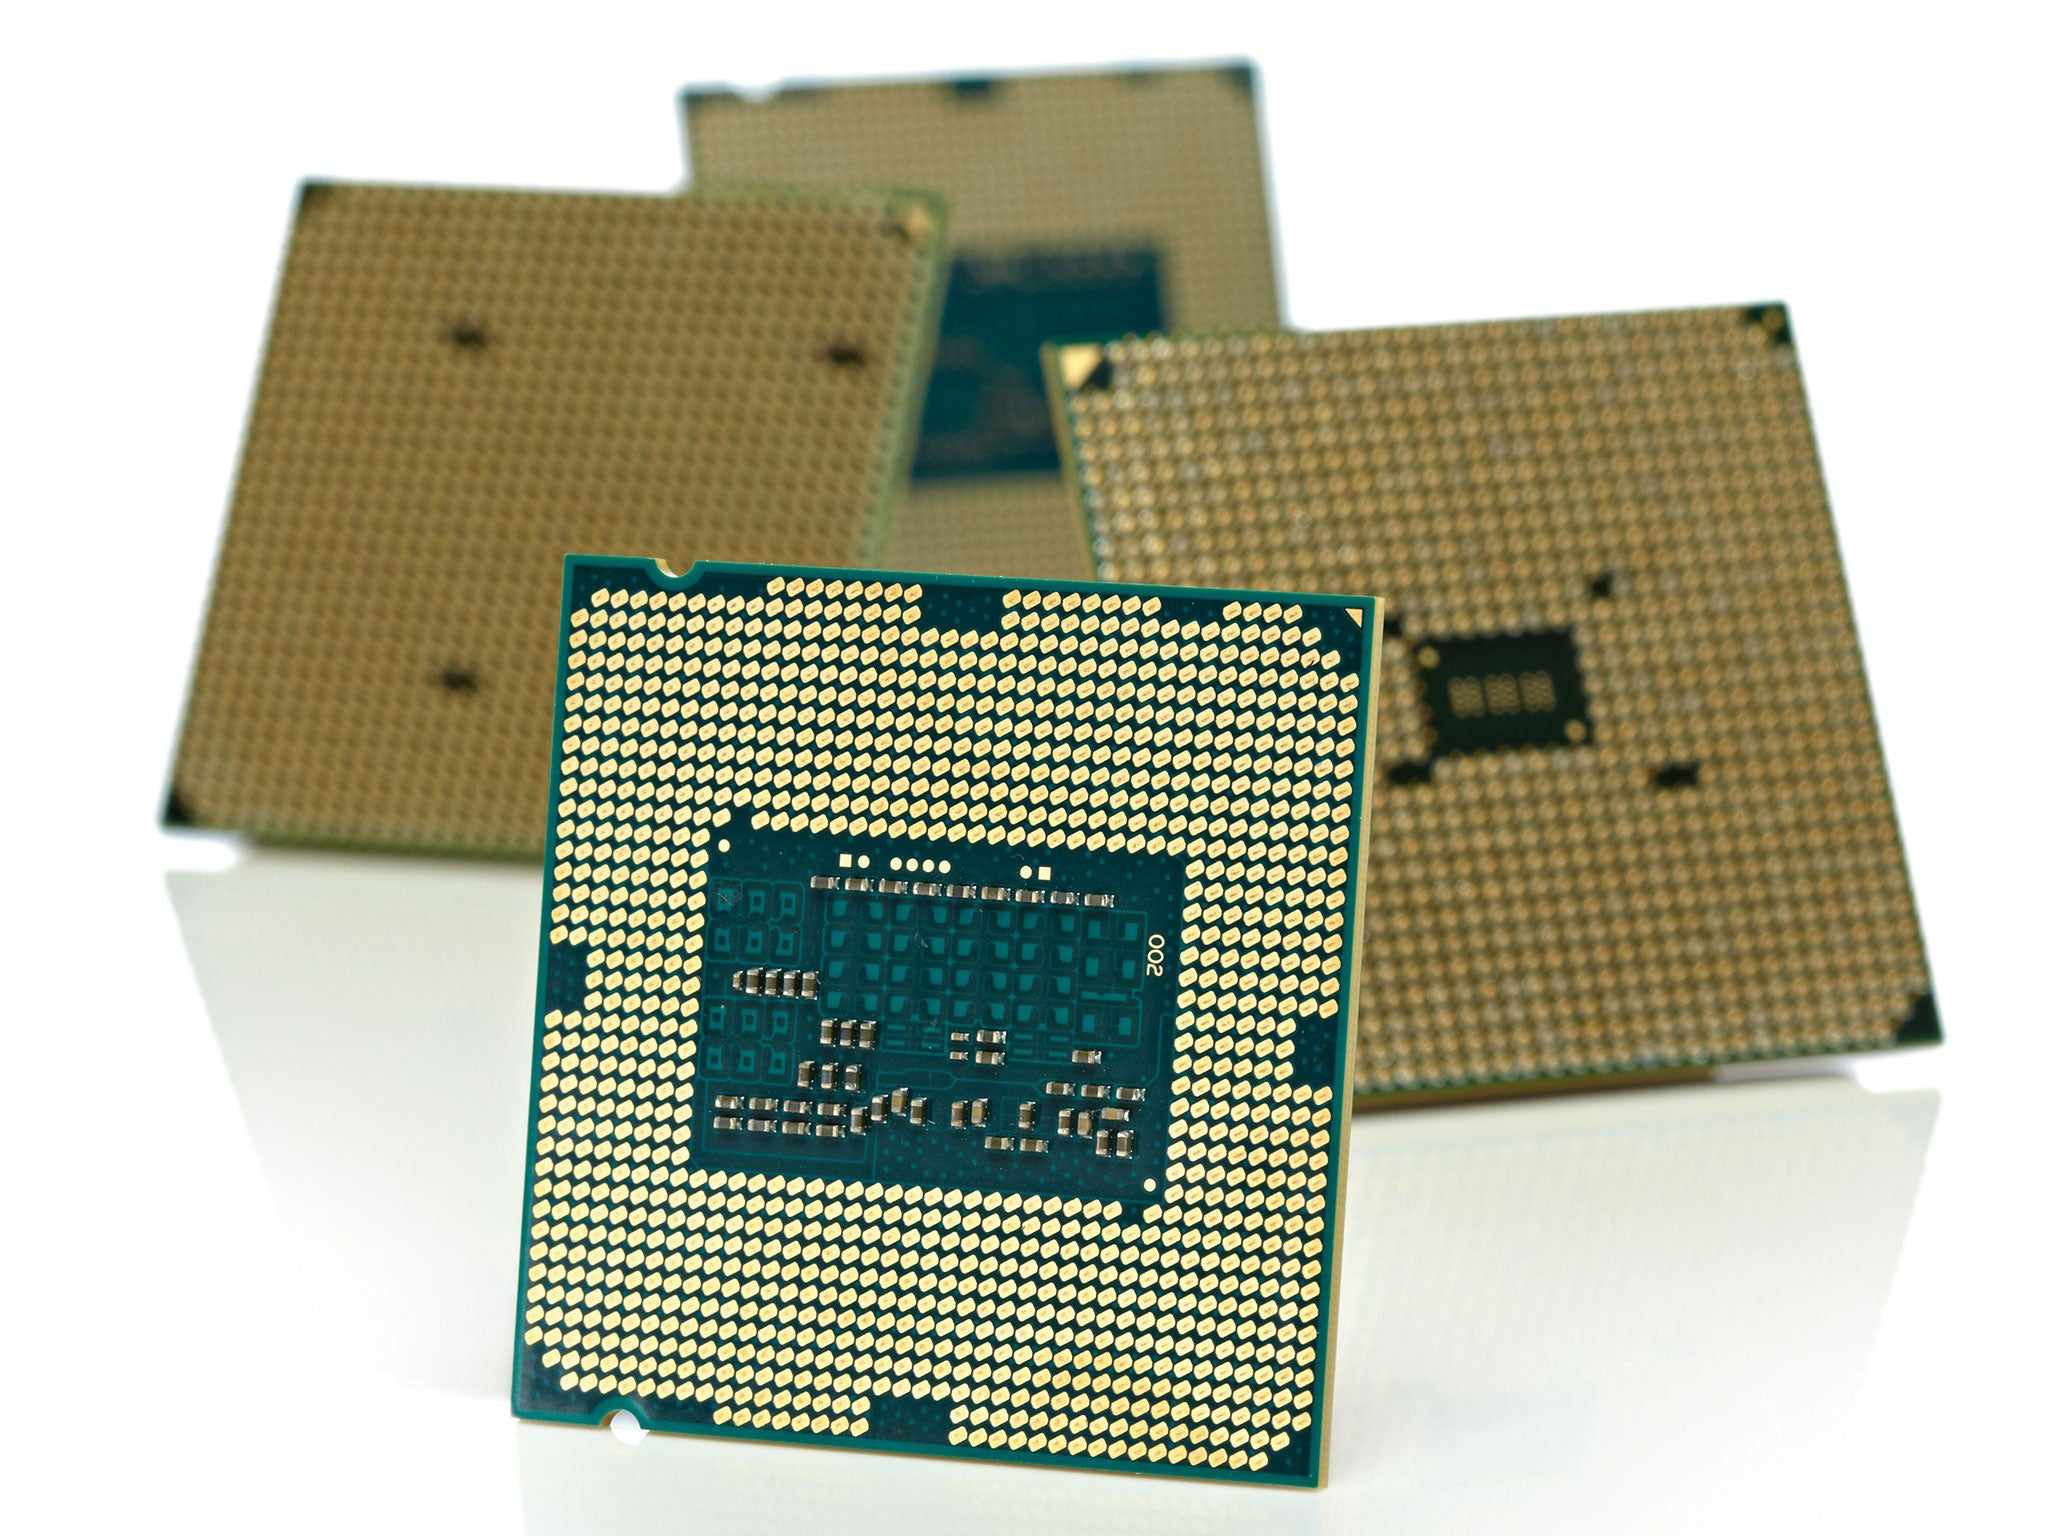 The End Of Moores Law Why Theory That Computer Processors Will Day You Be Introduced To Basics Soft Circuitry Some Basic Double In Power Every Two Years May Becoming Obsolete Independent